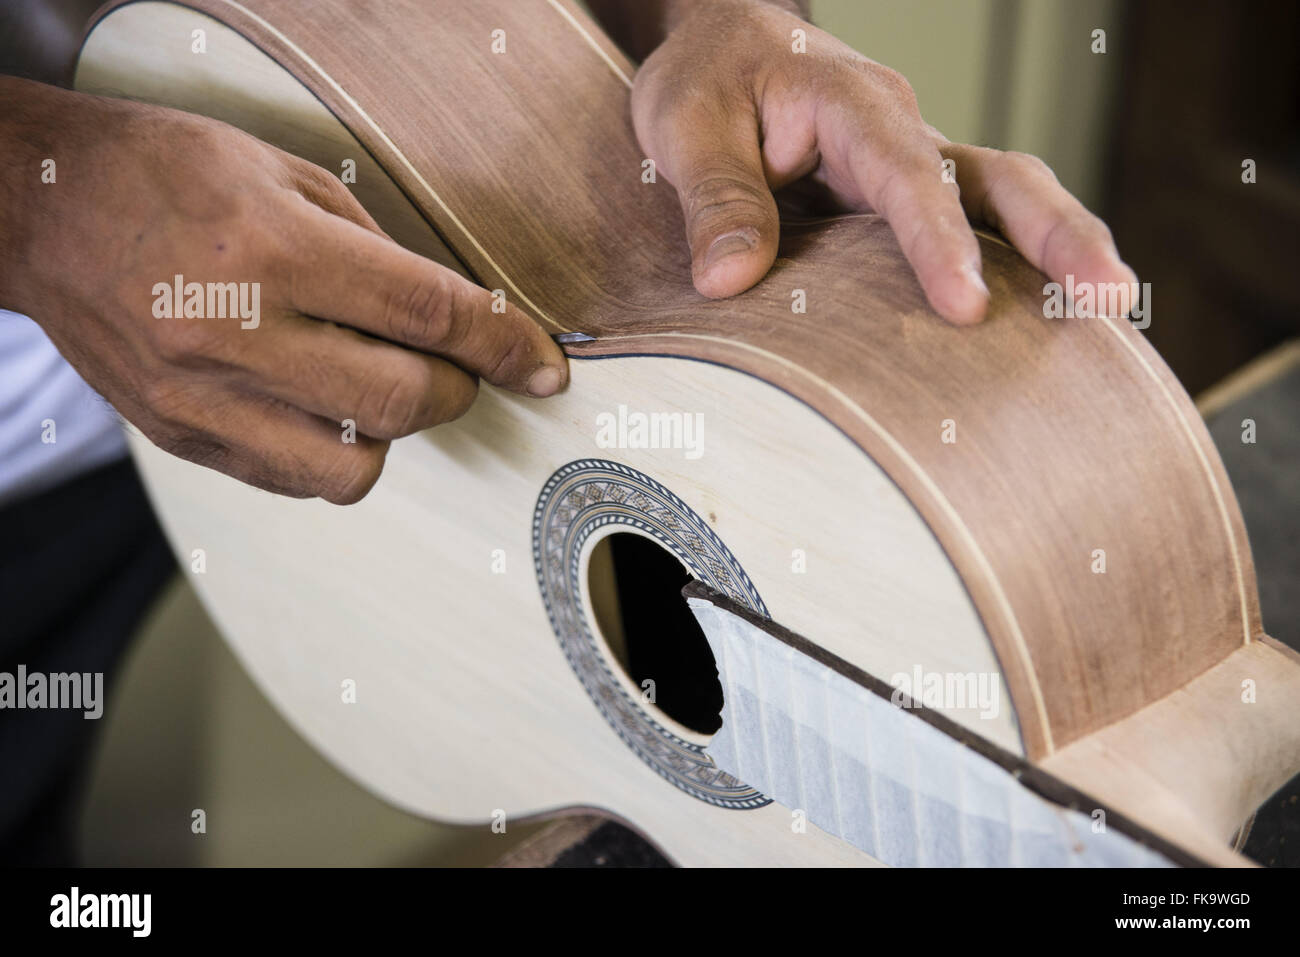 Luthier giving finishing a string instrument - Stock Image